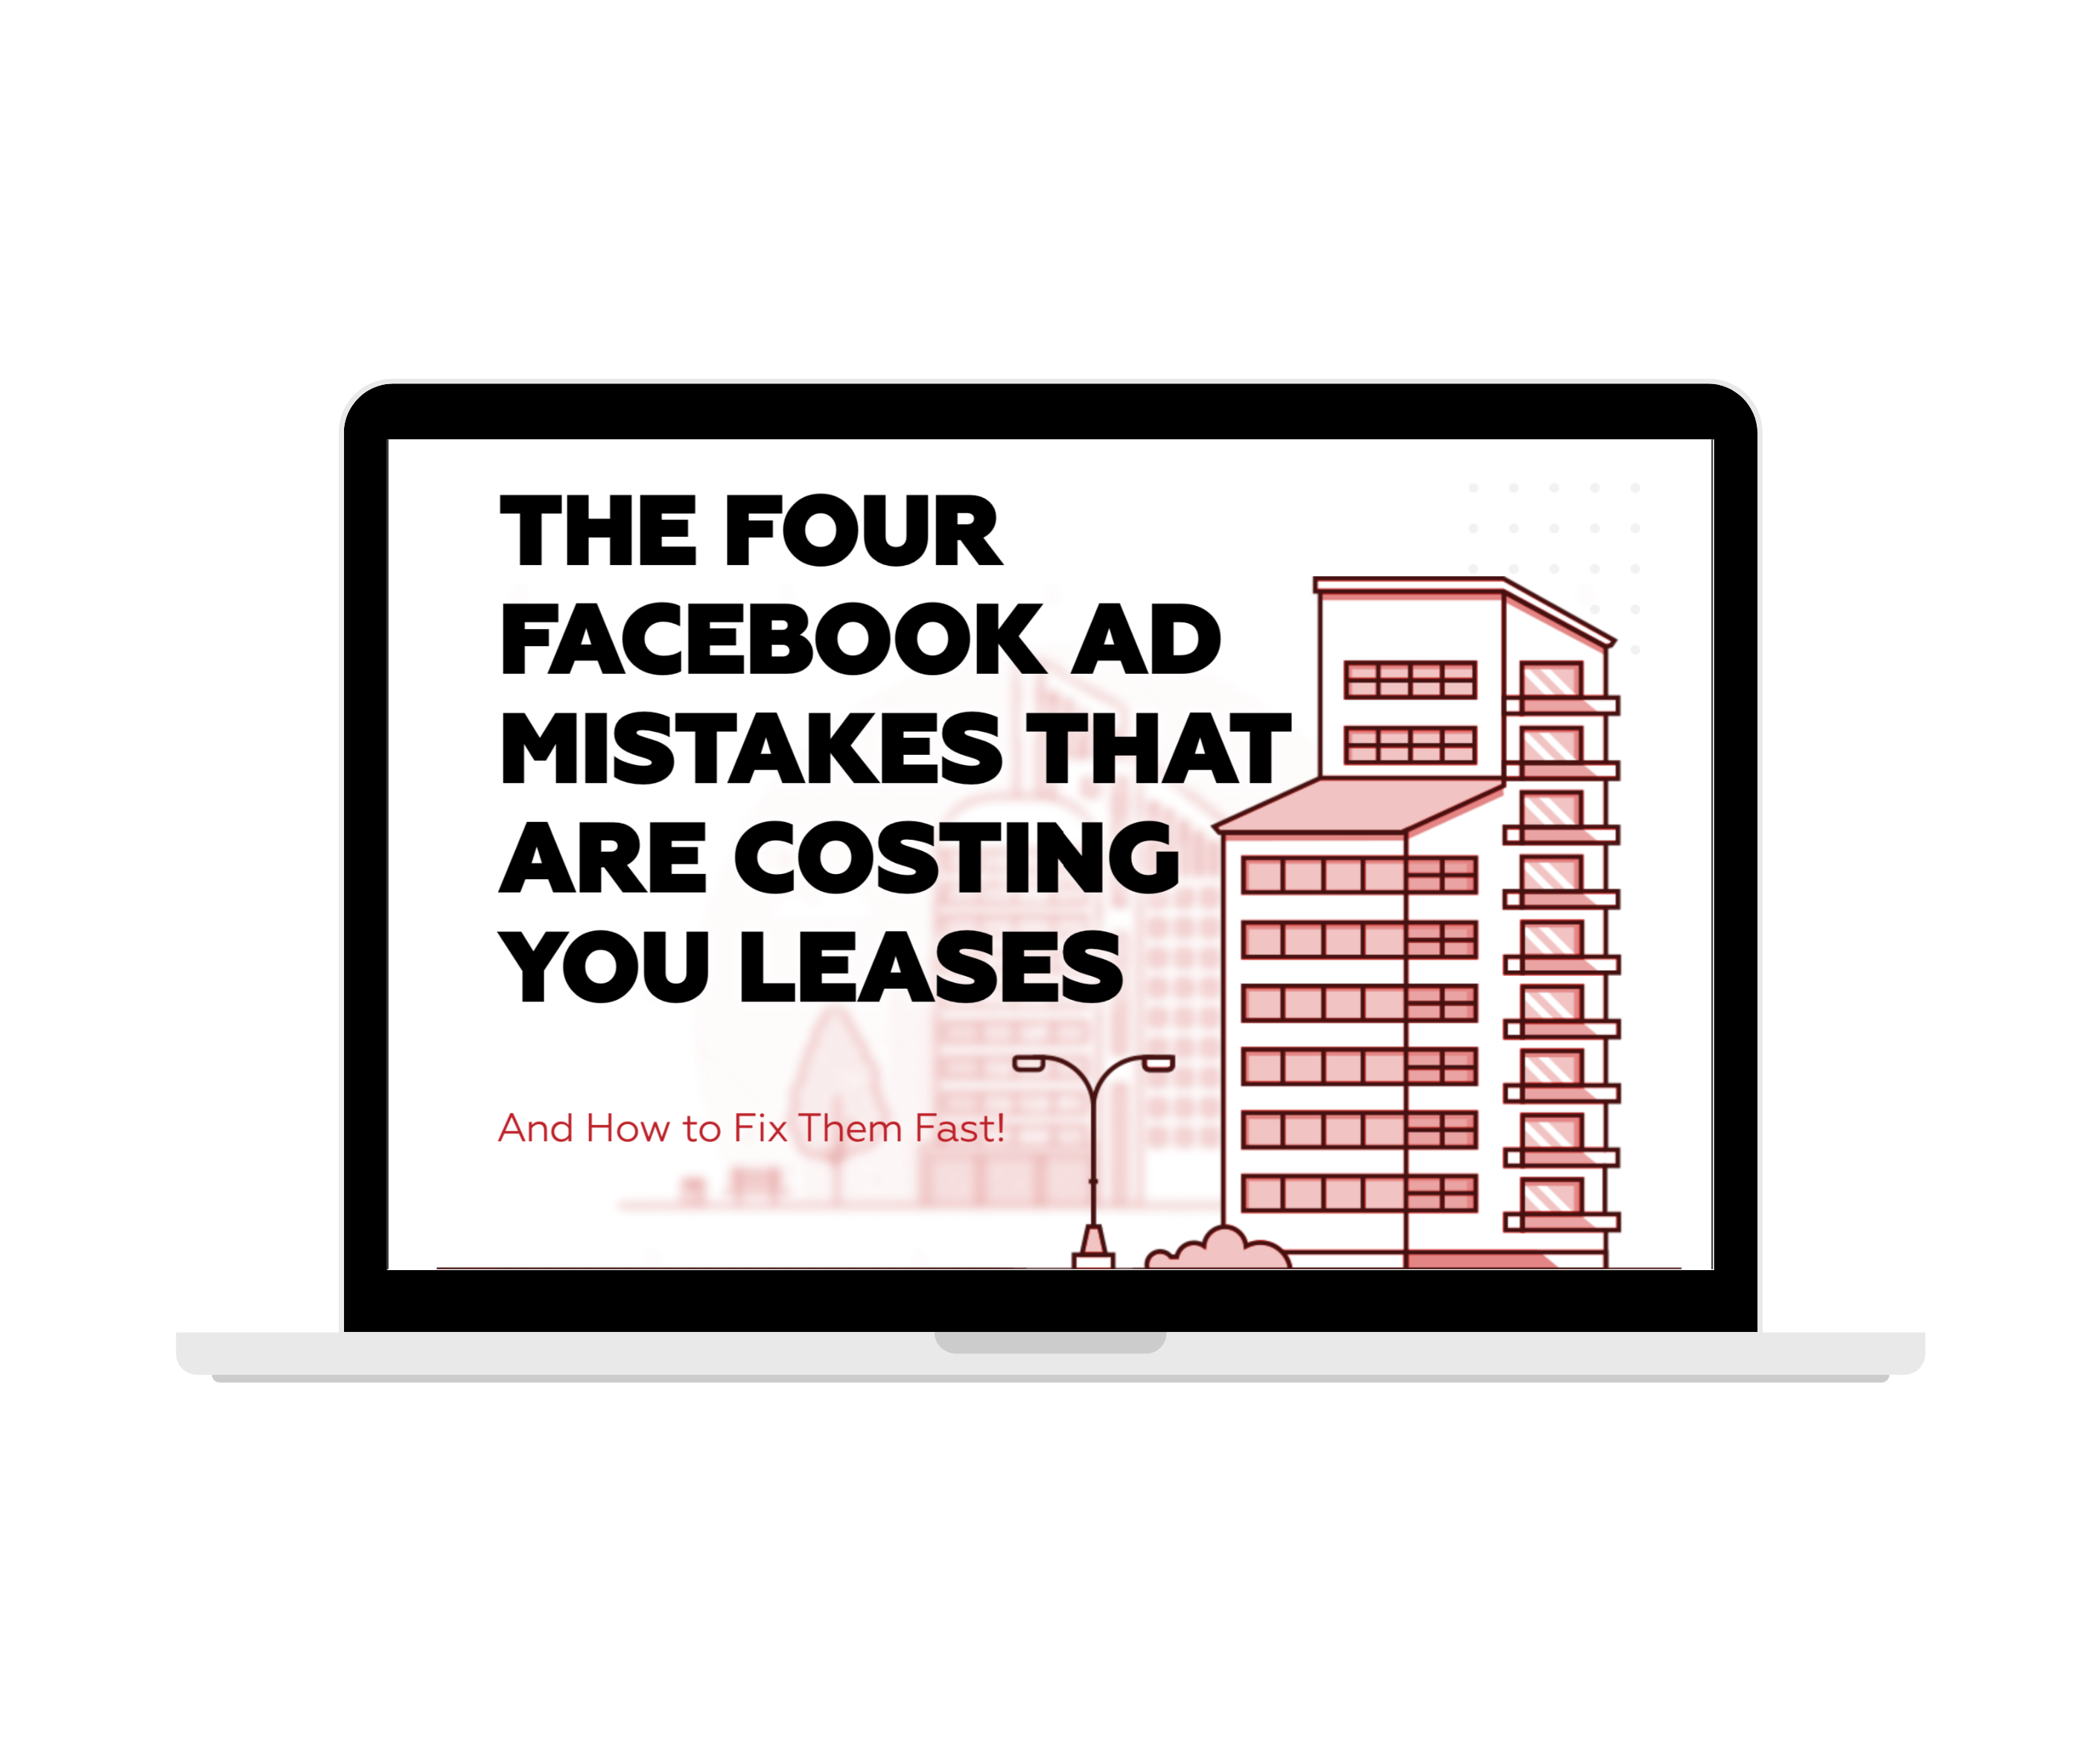 the four Facebook ad mistakes that are costing you leases